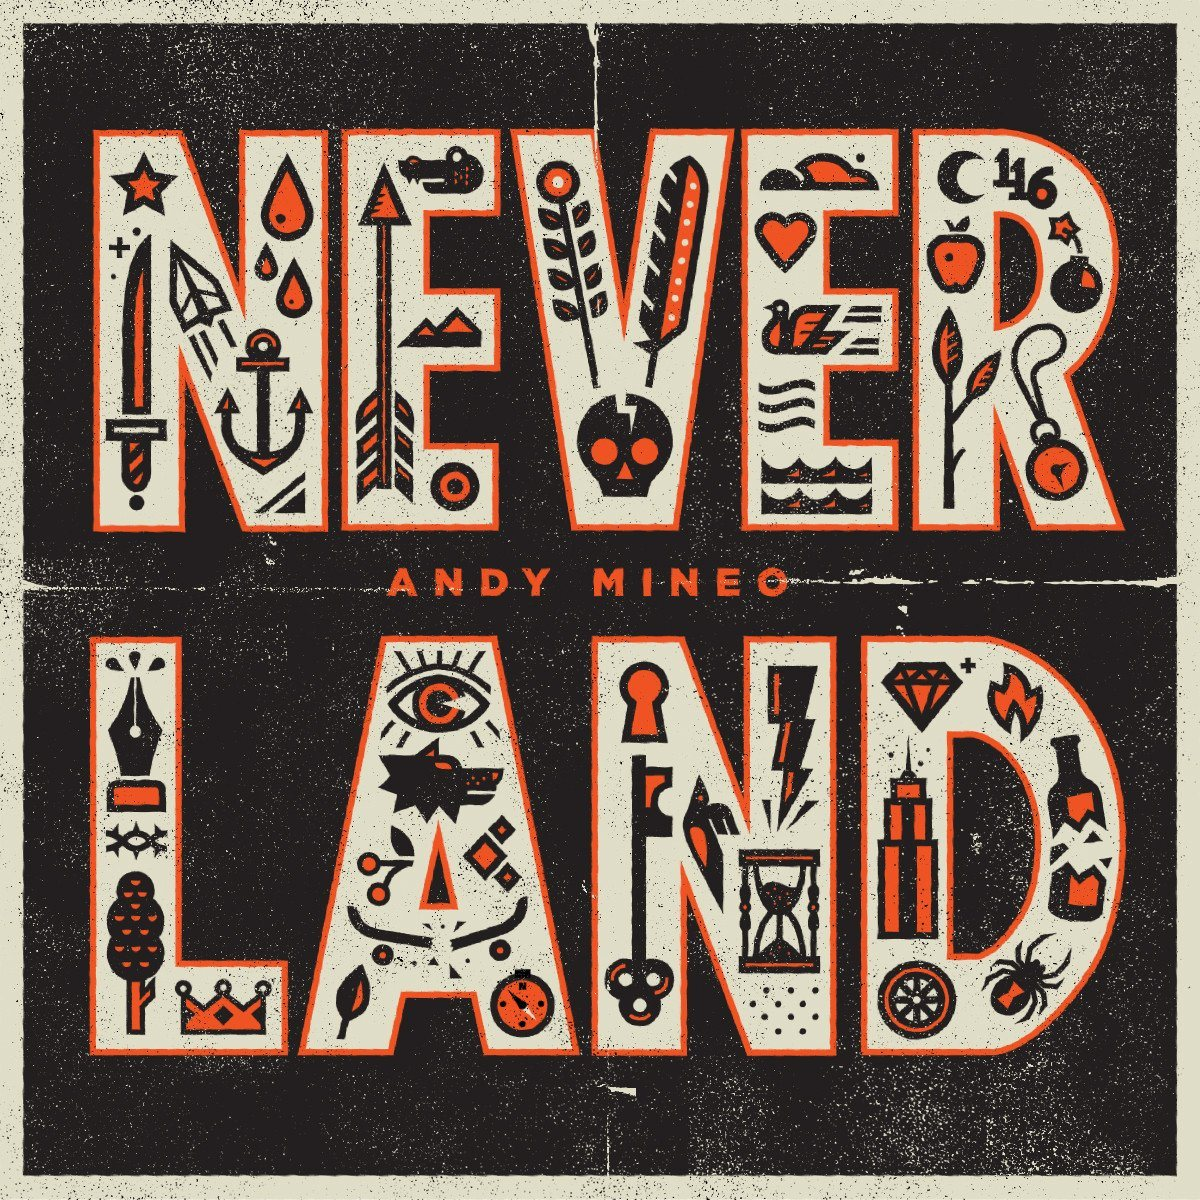 Reach Records Andy Mineo 'Never Land'